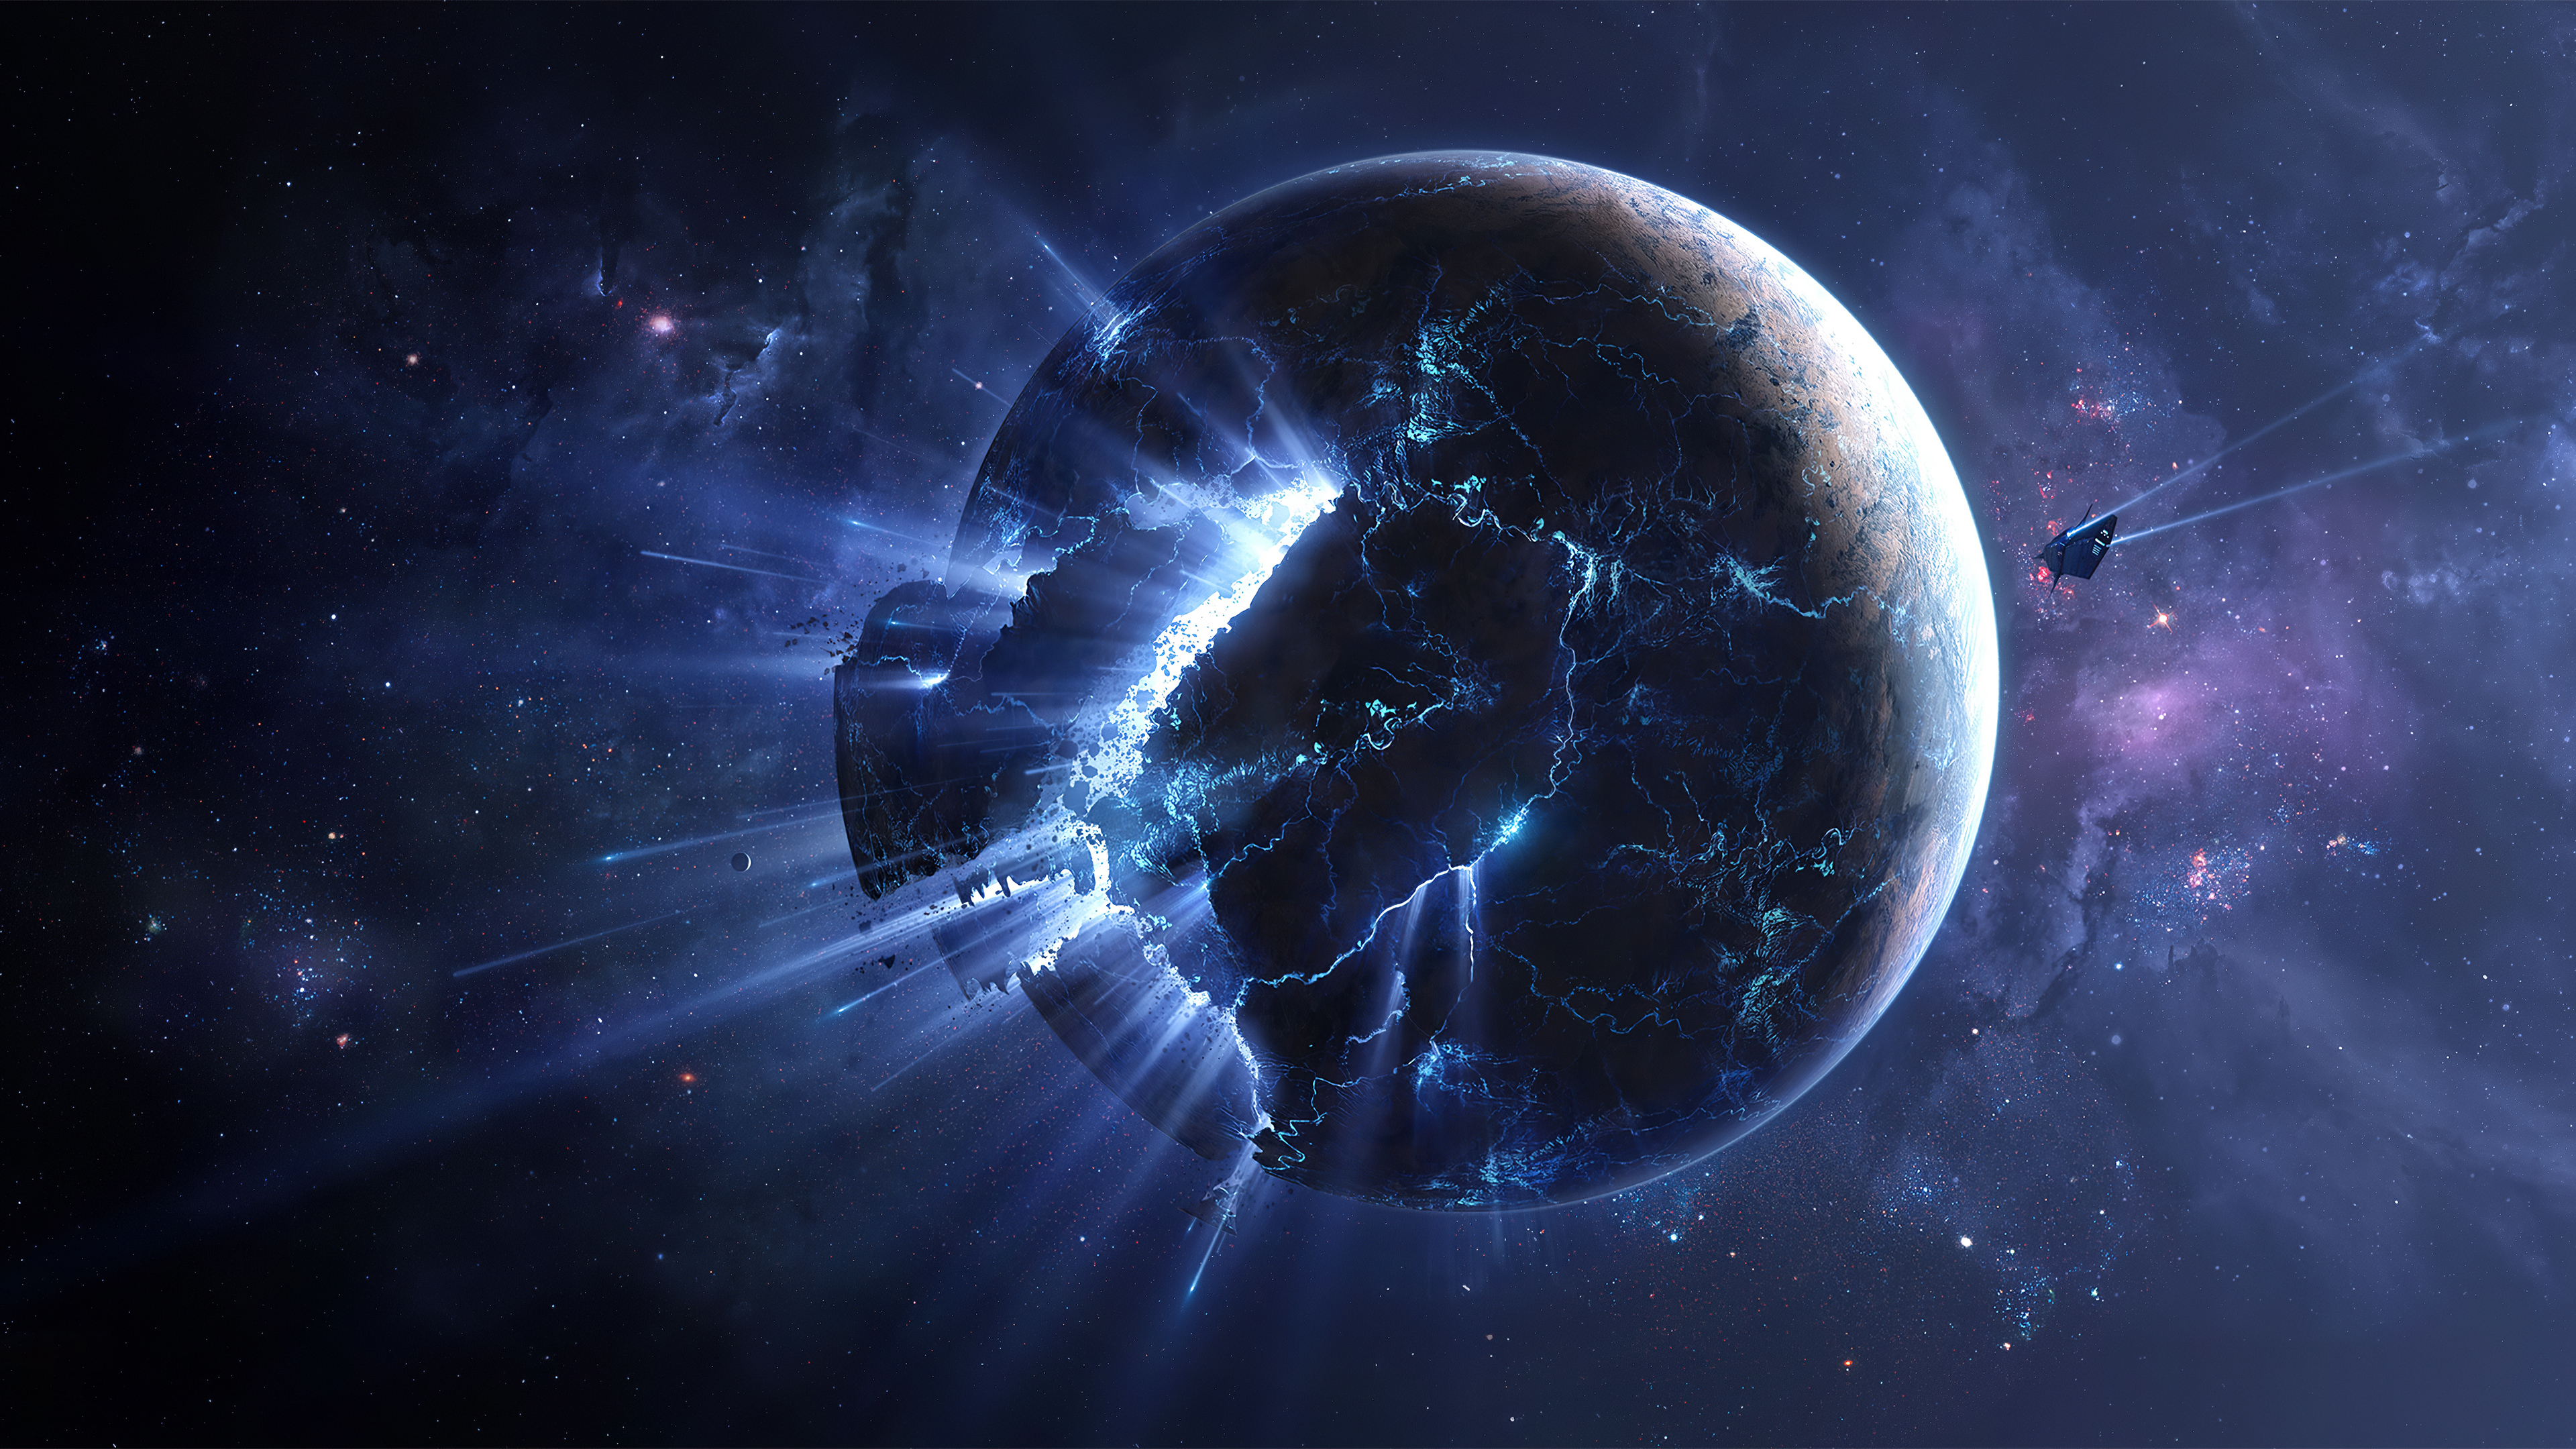 Shattered Planet 4k Hd Digital Universe 4k Wallpapers Images Backgrounds Photos And Pictures